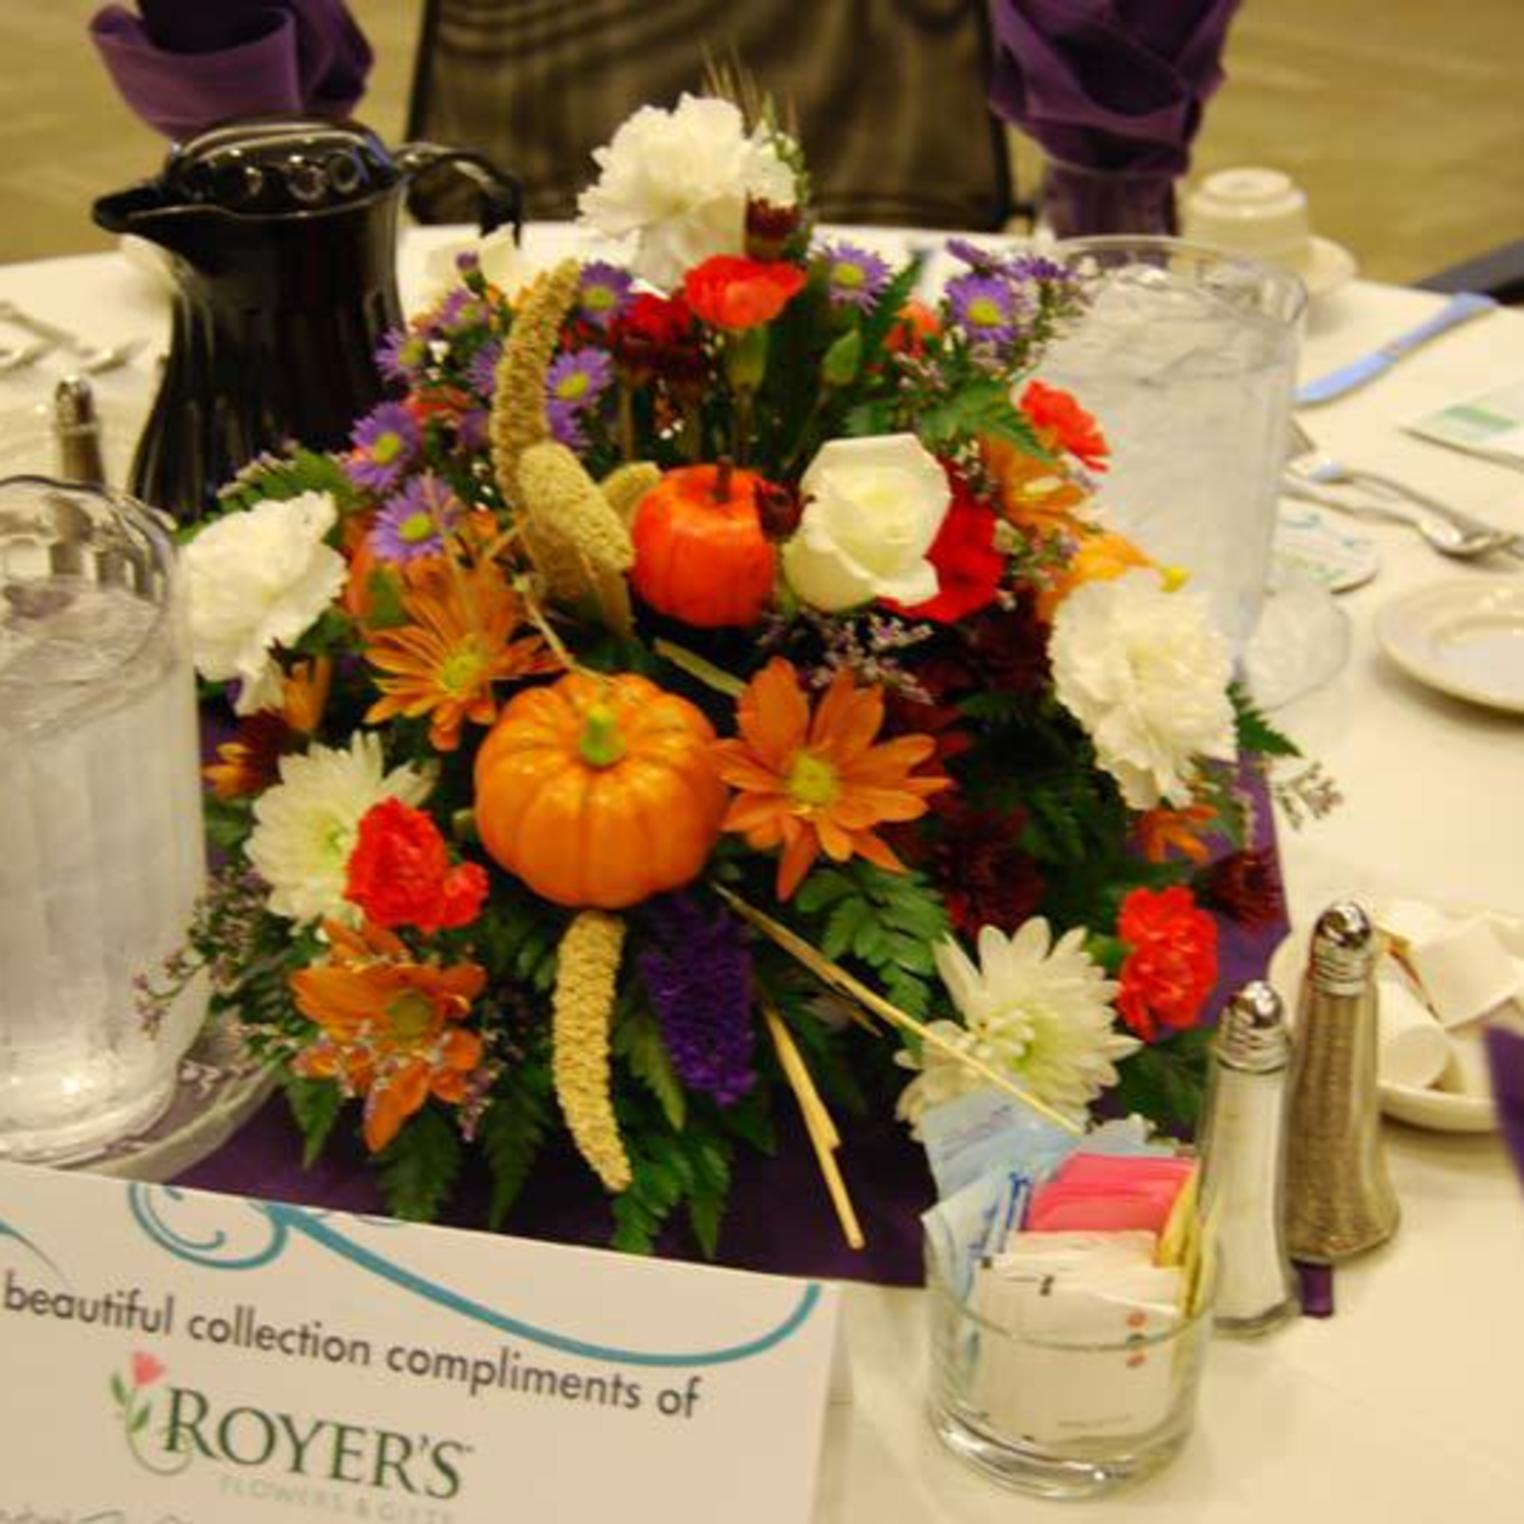 Royer's Flowers Carlisle Fall Banquet Centerpiece